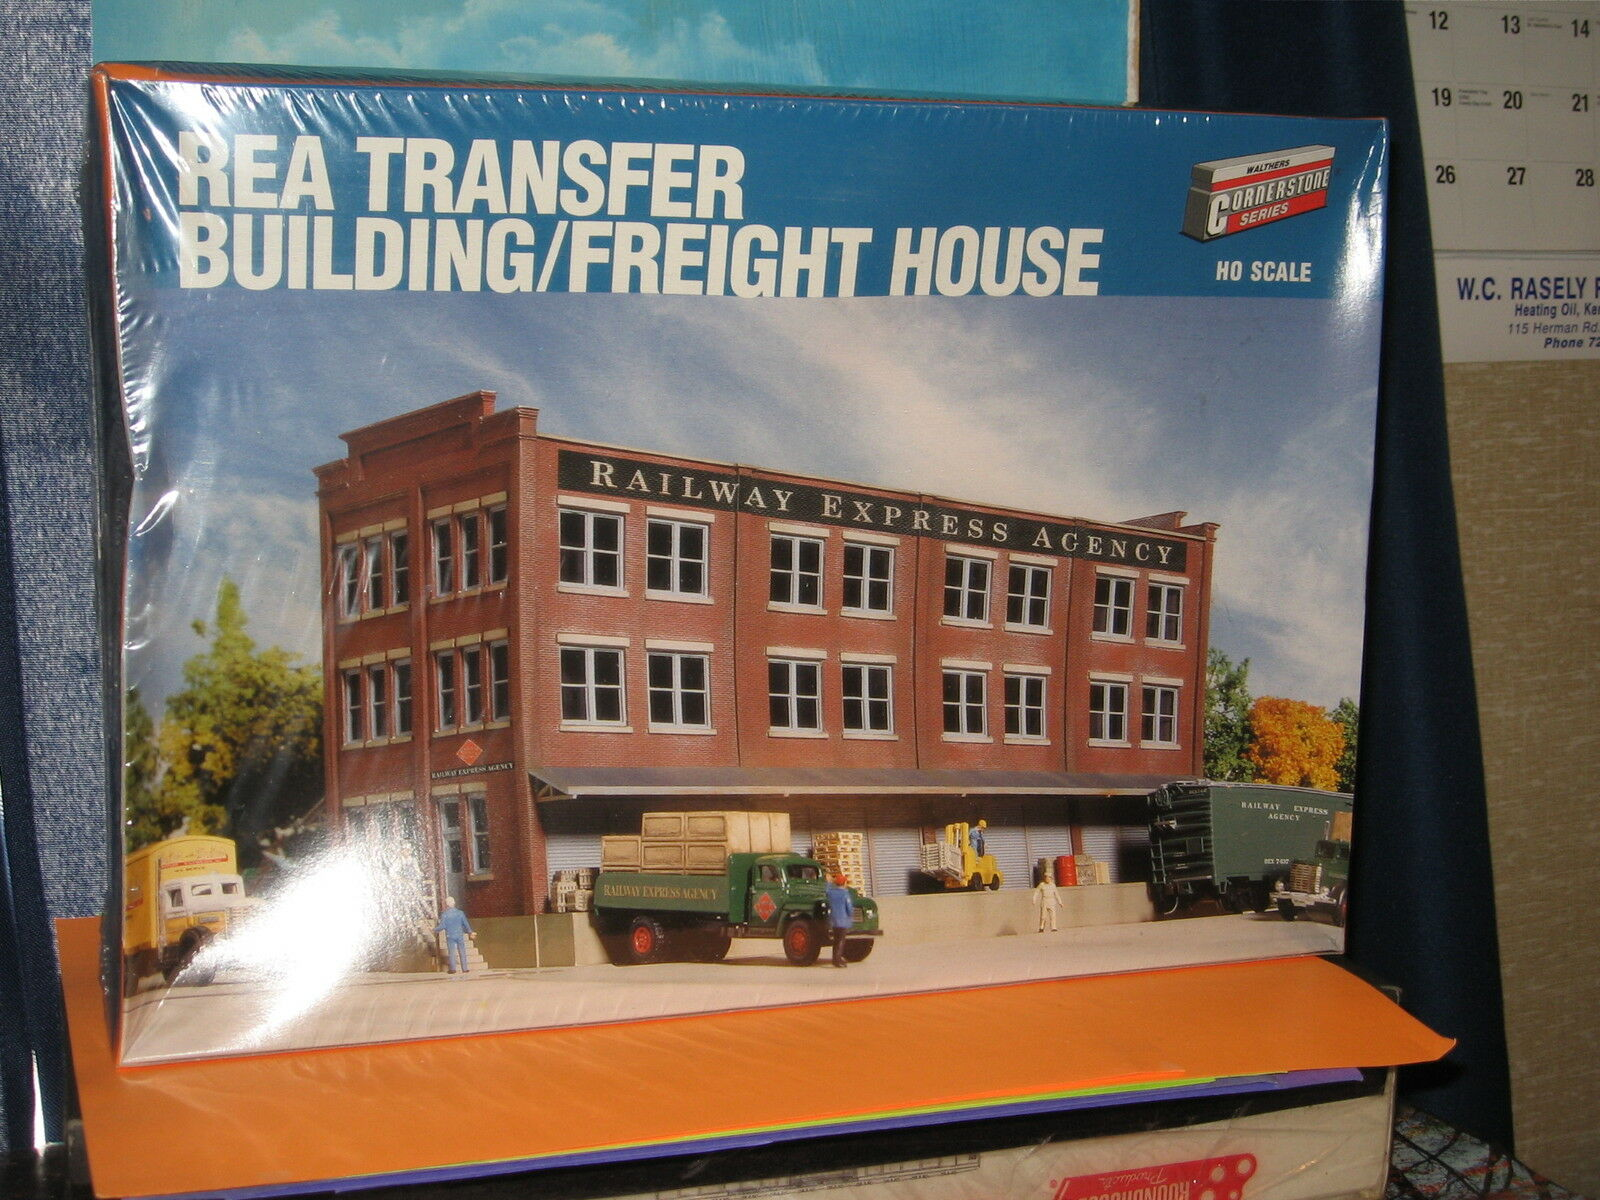 WALTHERS CORNERSTONE SERIES HO SCALE  933-3095 REA TRANSFER BLDG/ FREIGHT HOUSE